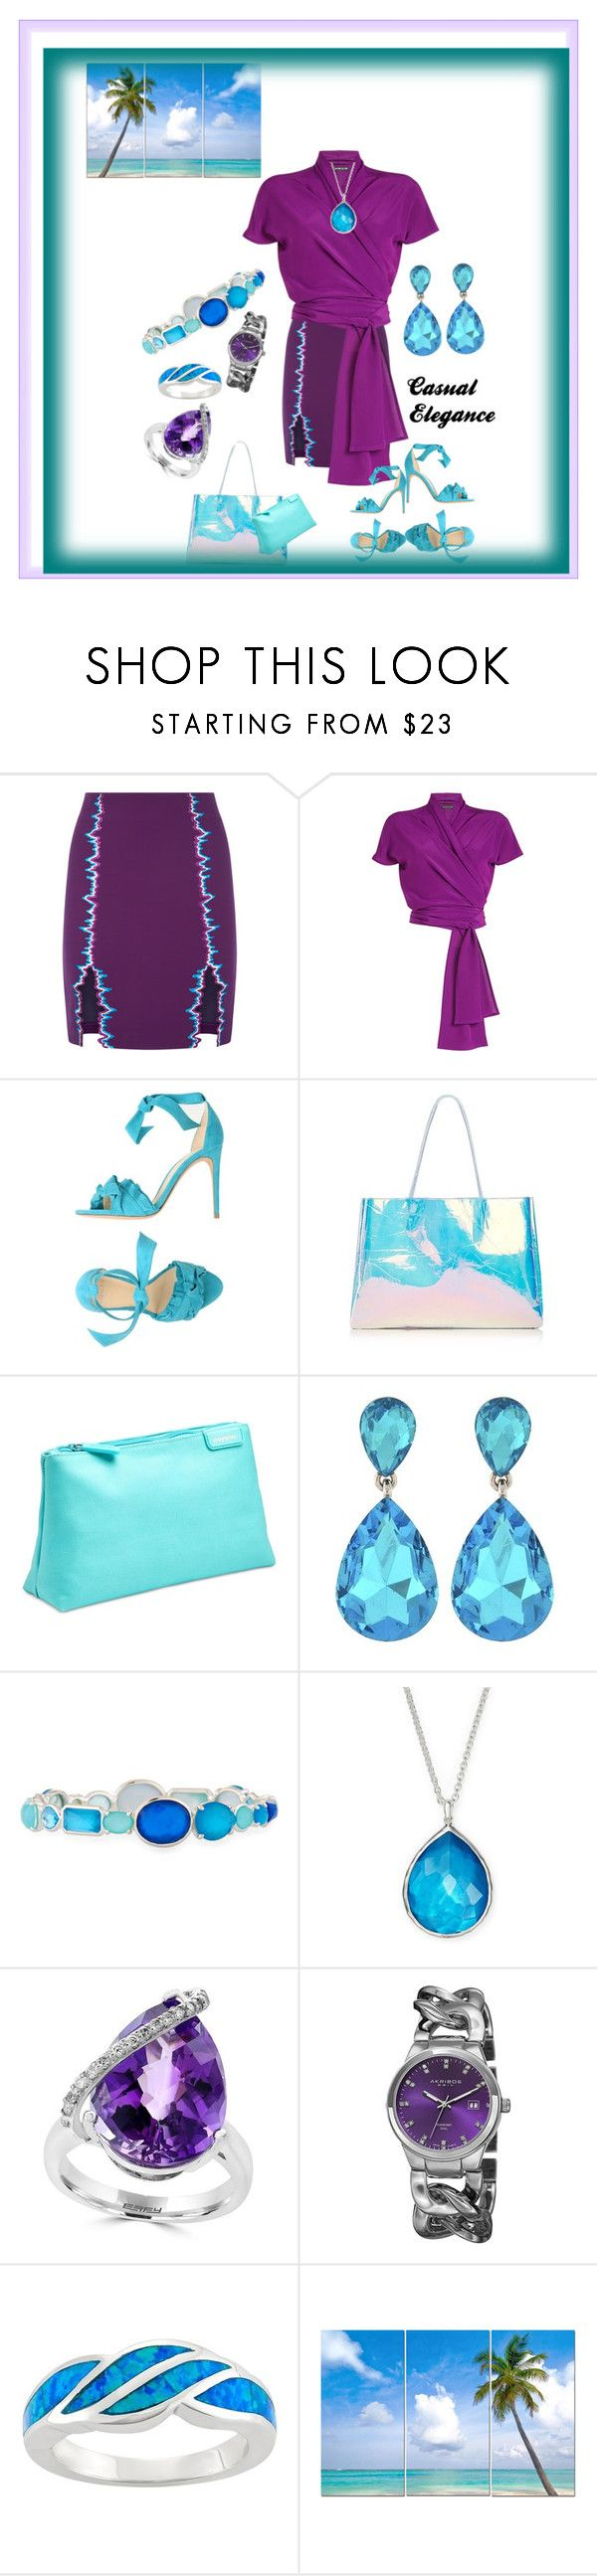 """Casual elegance"" by sinmrn ❤ liked on Polyvore featuring La Perla, Etro, Alexandre Birman, poppin., Ippolita, Effy Jewelry, Akribos XXIV and Sterling"